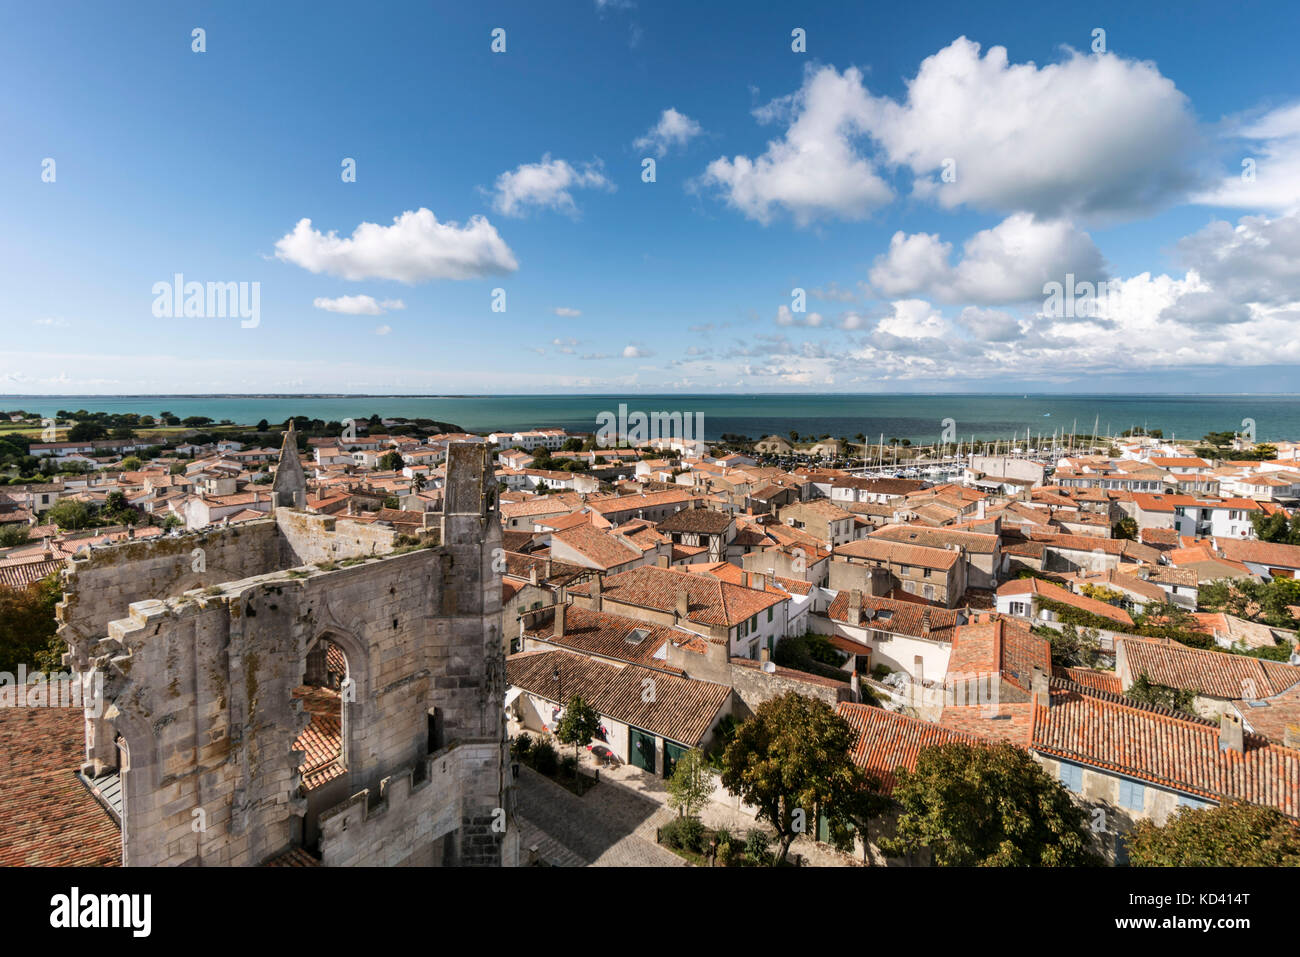 Saint Martin church, Ile de Re, Nouvelle-Aquitaine, french westcoast, france, | Saint Martin Kirche, Panoramablick, - Stock Image